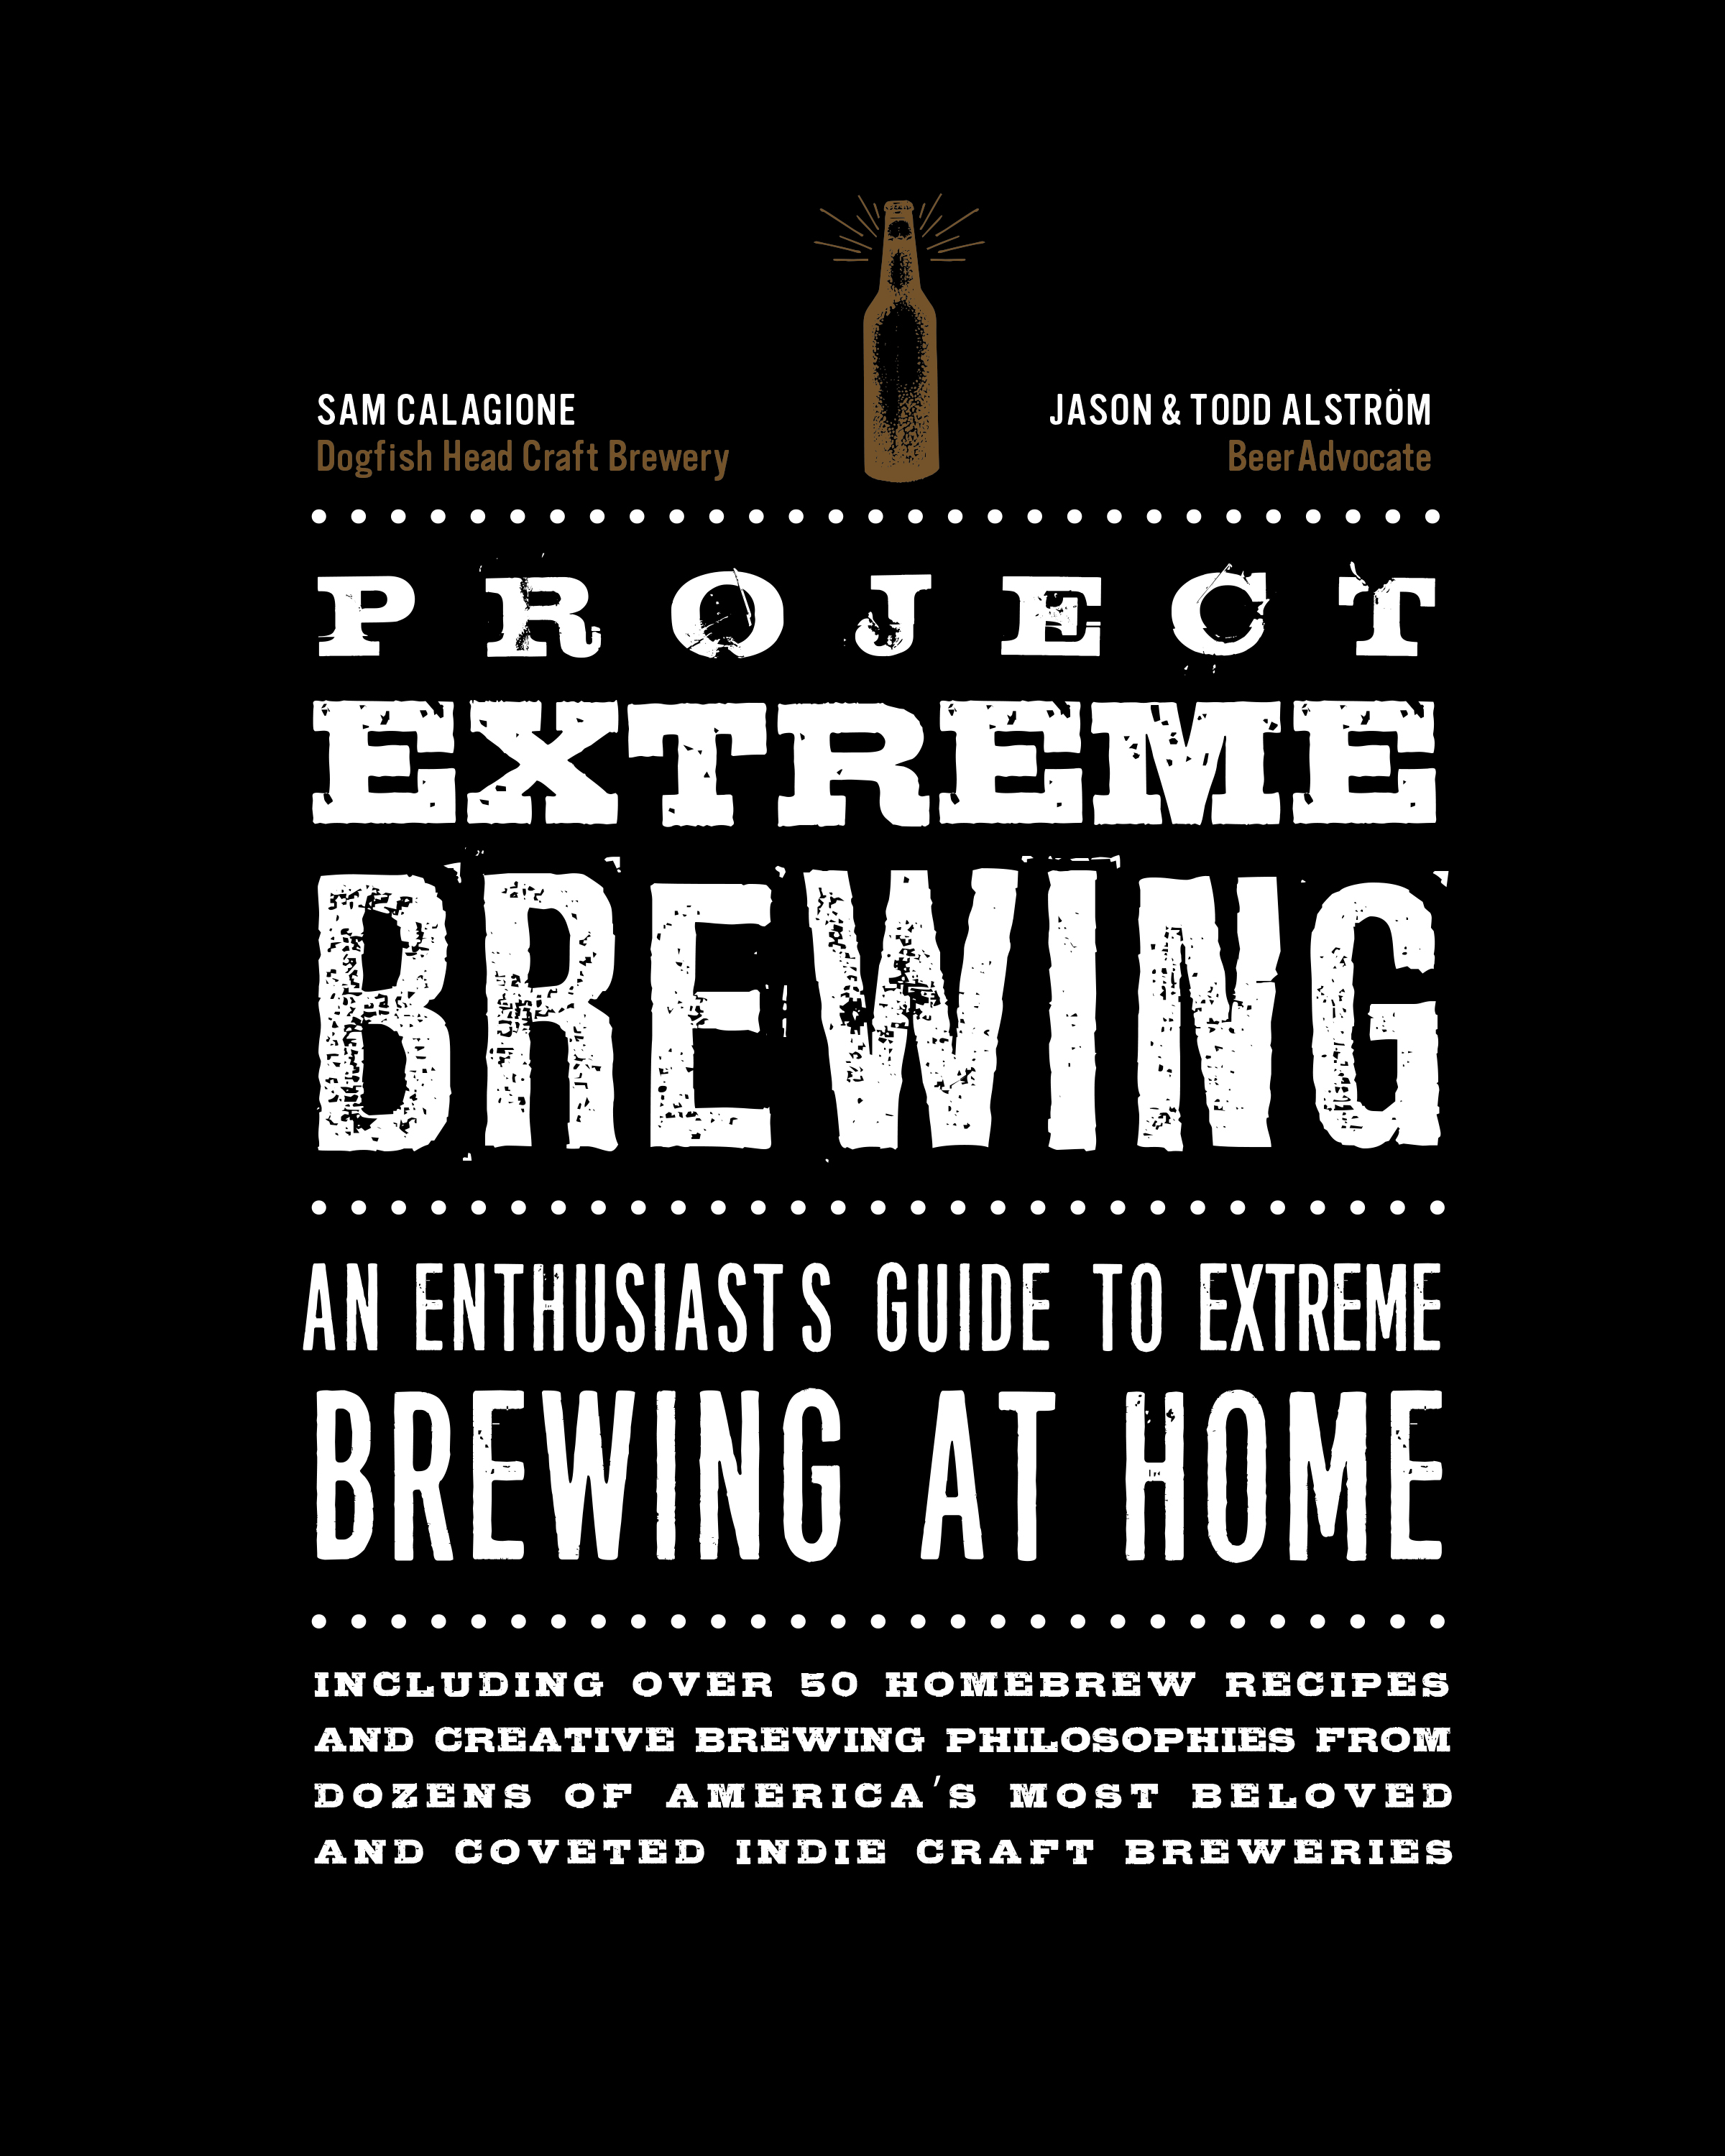 Dogfish Head's Sam Calagione And Beeradvocate Founders Release Book On Extreme Brewing photo